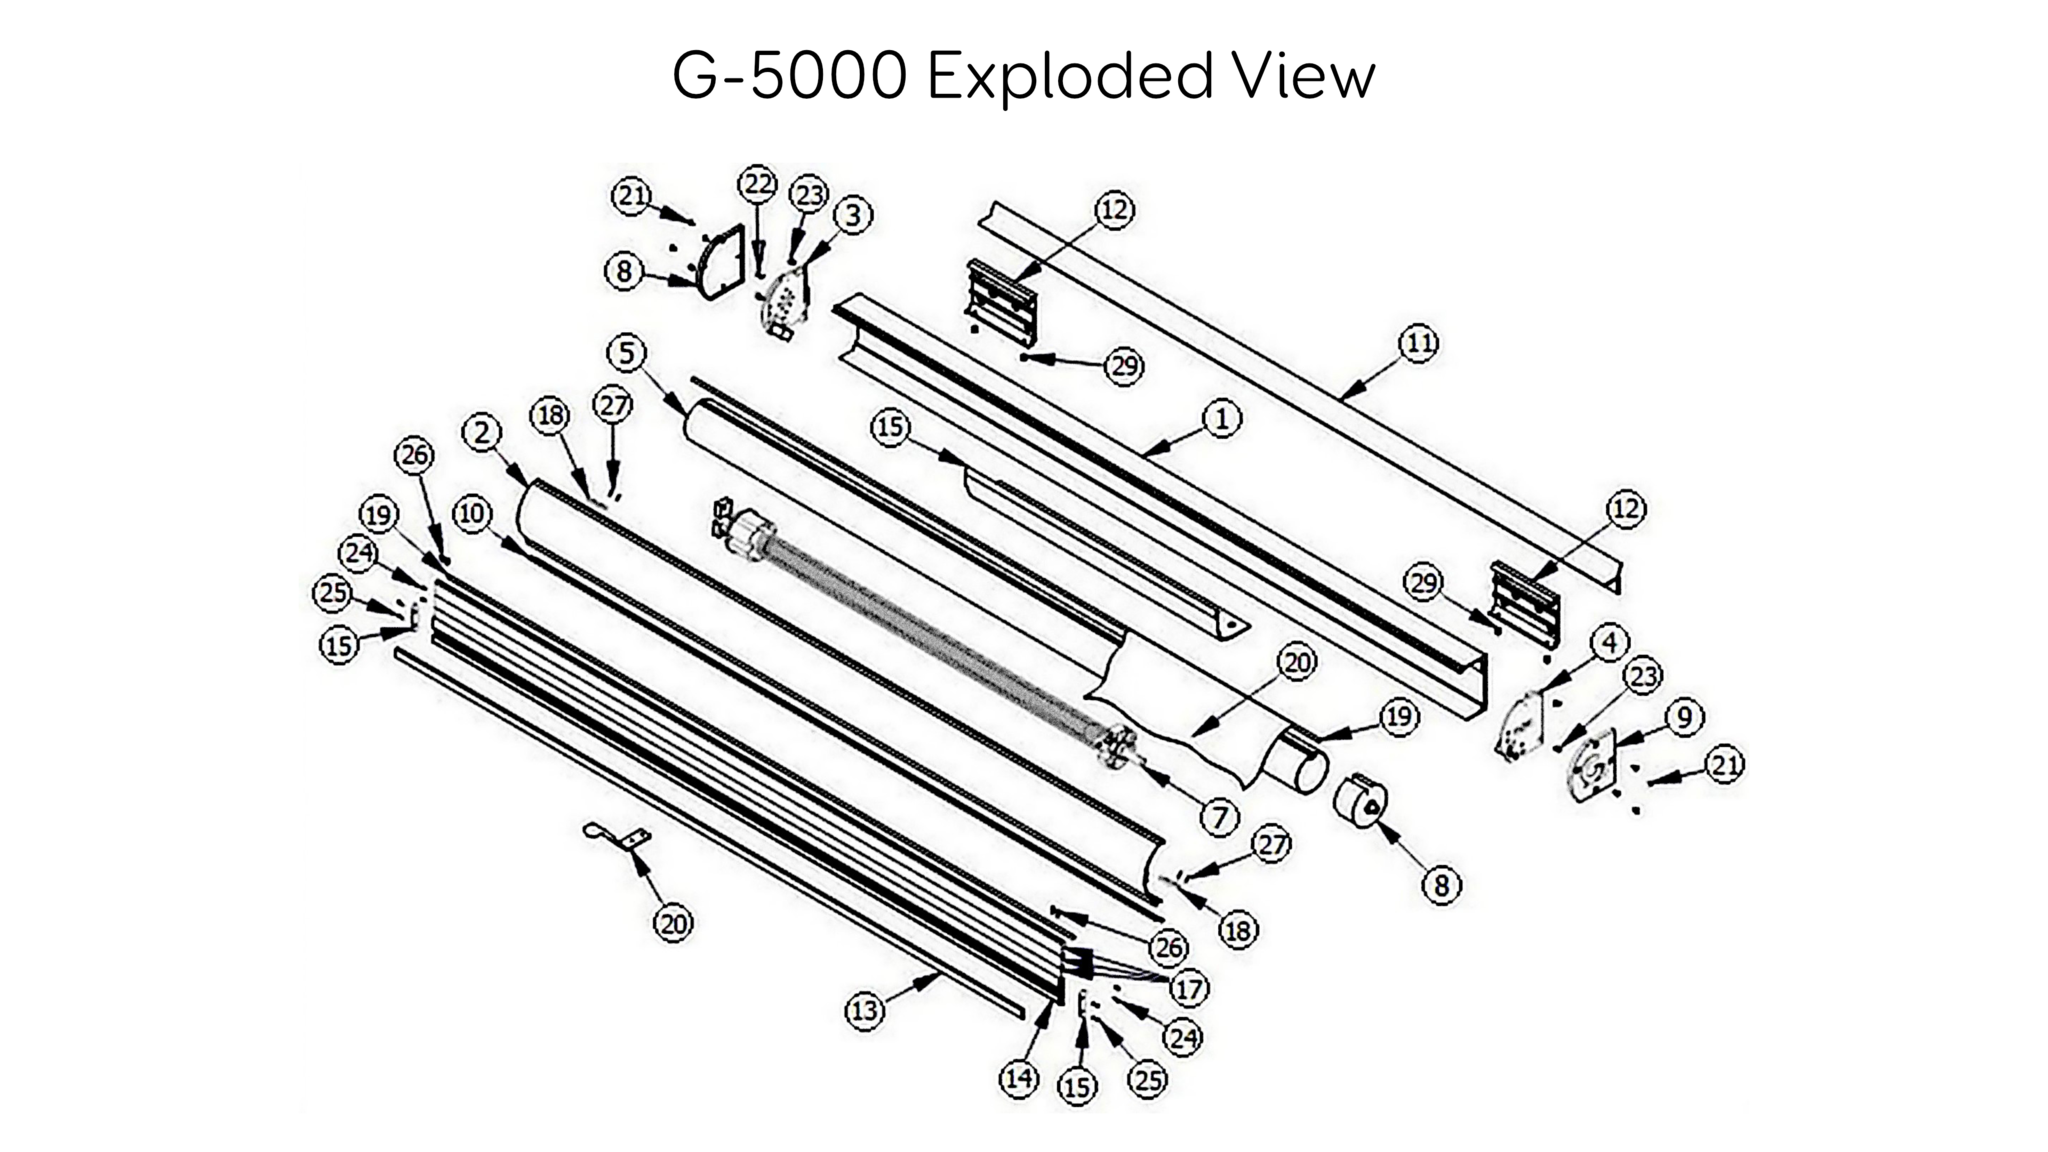 G 5000 diagram girard rv awnings girard systems g 5000 diagram pooptronica Image collections